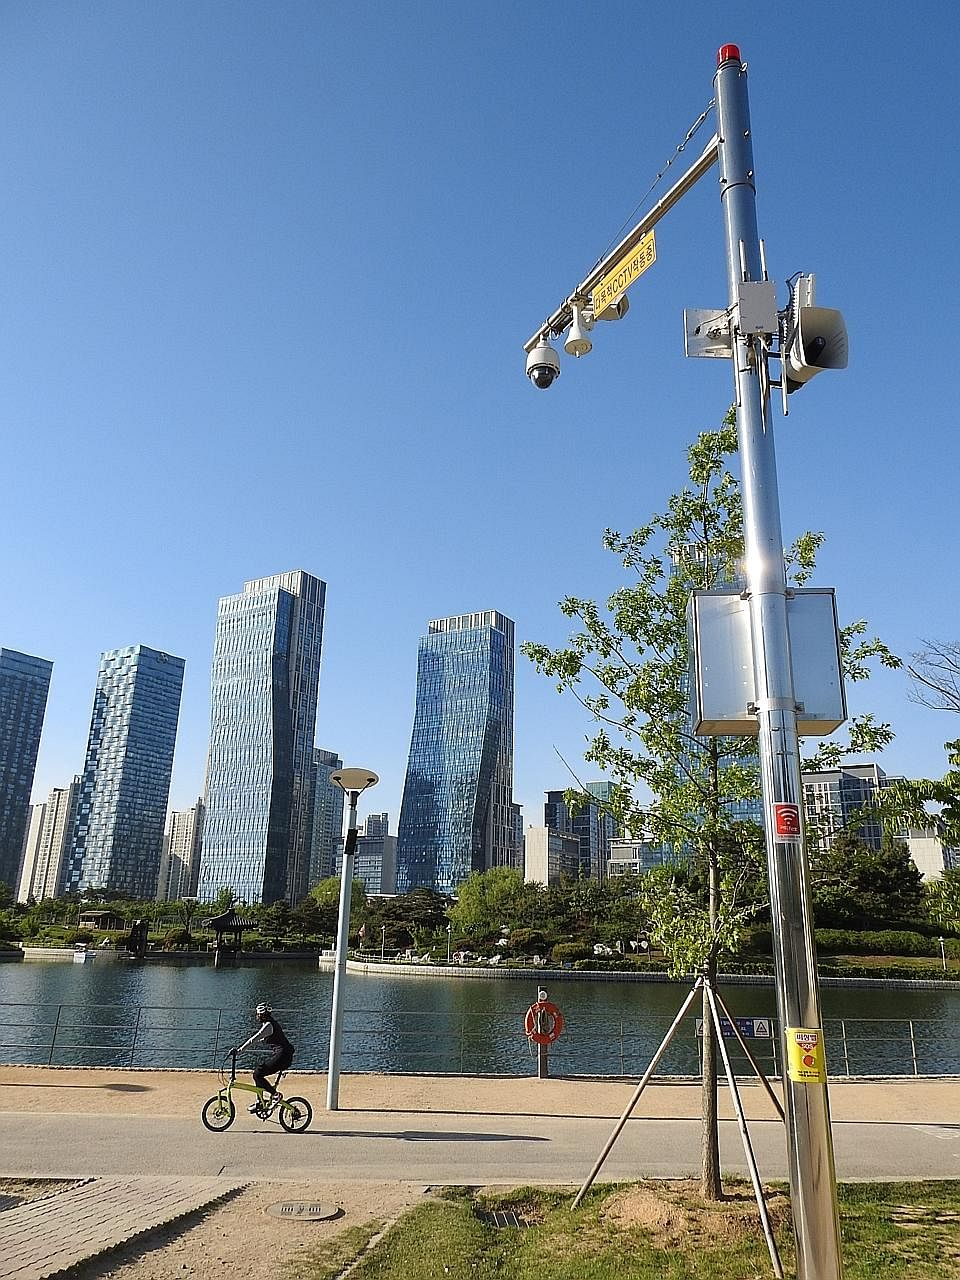 Poles in the park are equipped with closed-circuit television cameras and siren bells to offer eme